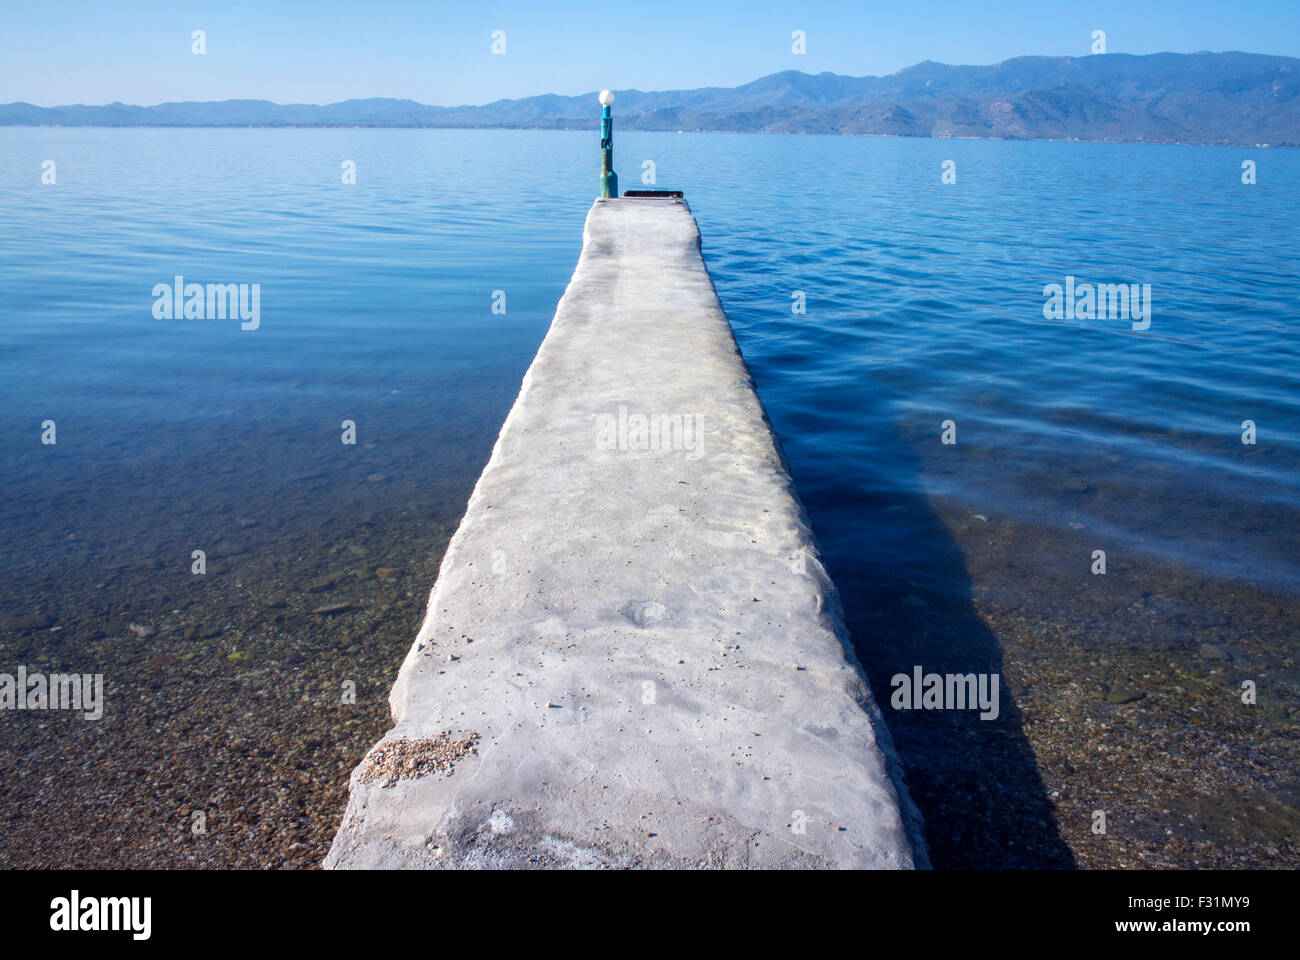 A jetty out into Geras Bay, Lesbos, Greece. - Stock Image